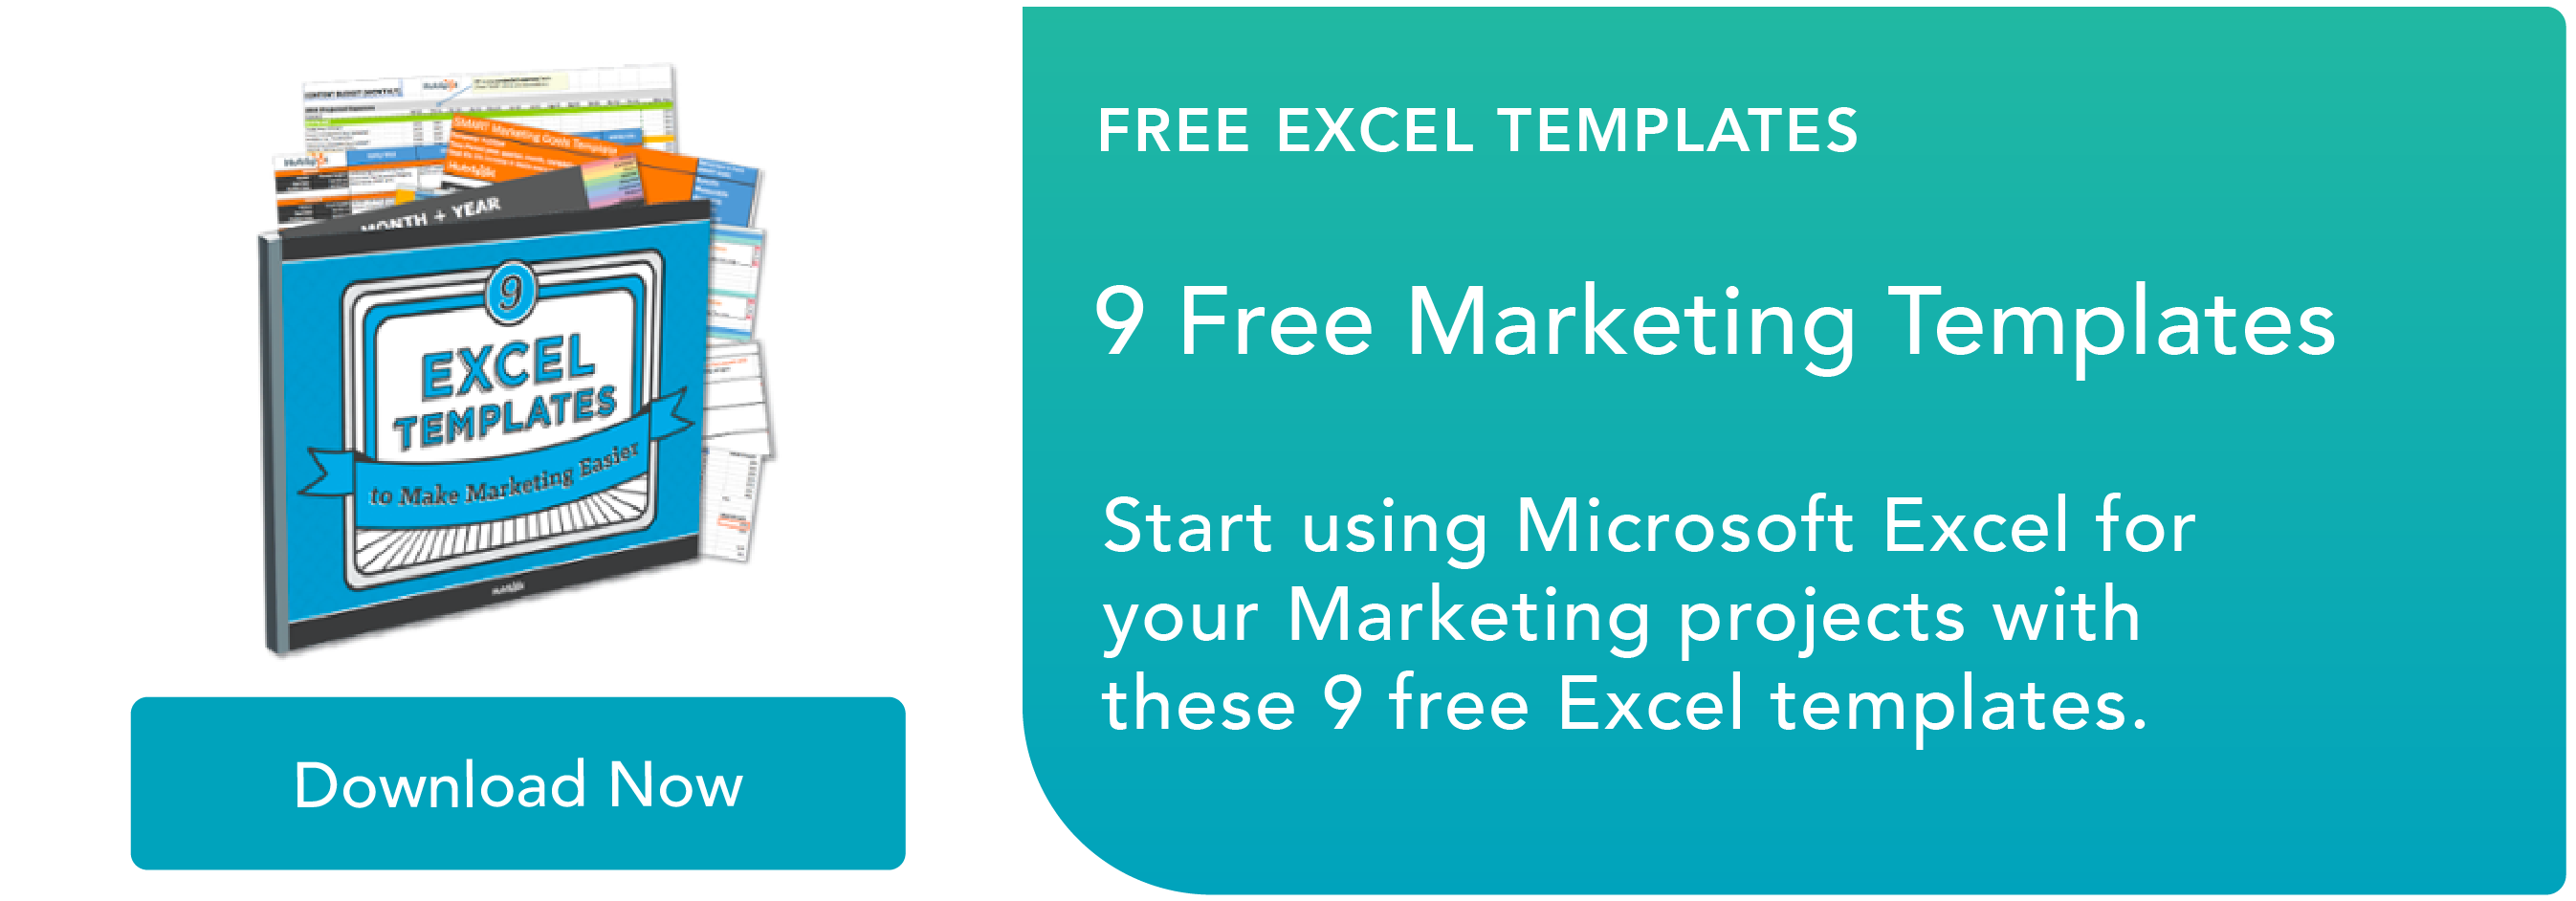 How to Learn Excel Online: 21 Free and Paid Resources for Excel Training